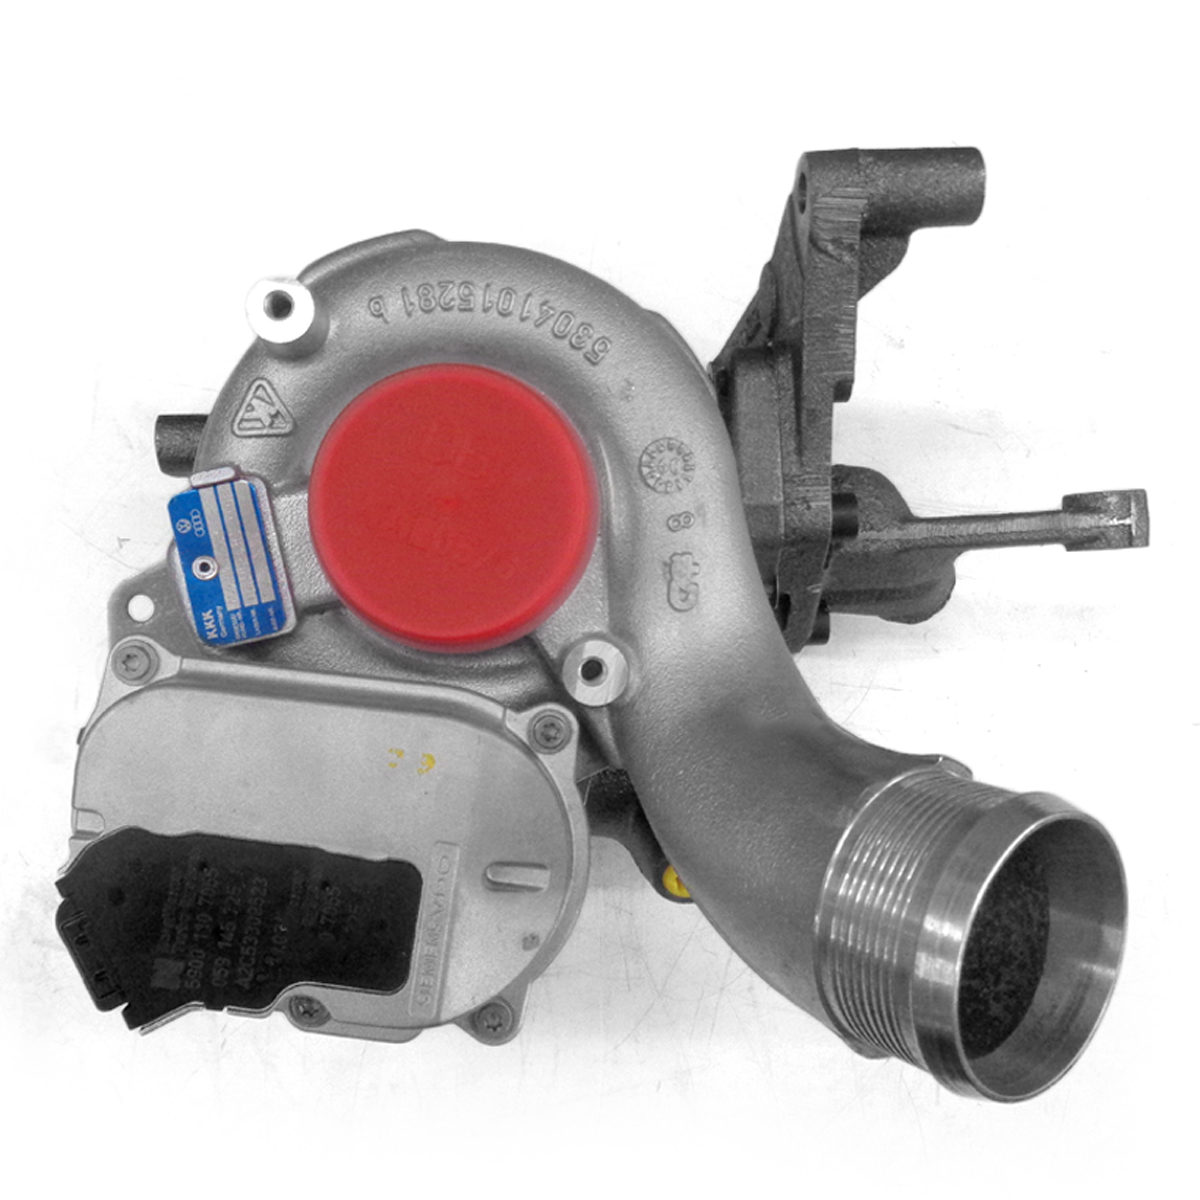 Turbo Compressor Kkk - Turbinas - Unidade - vw - Touareg